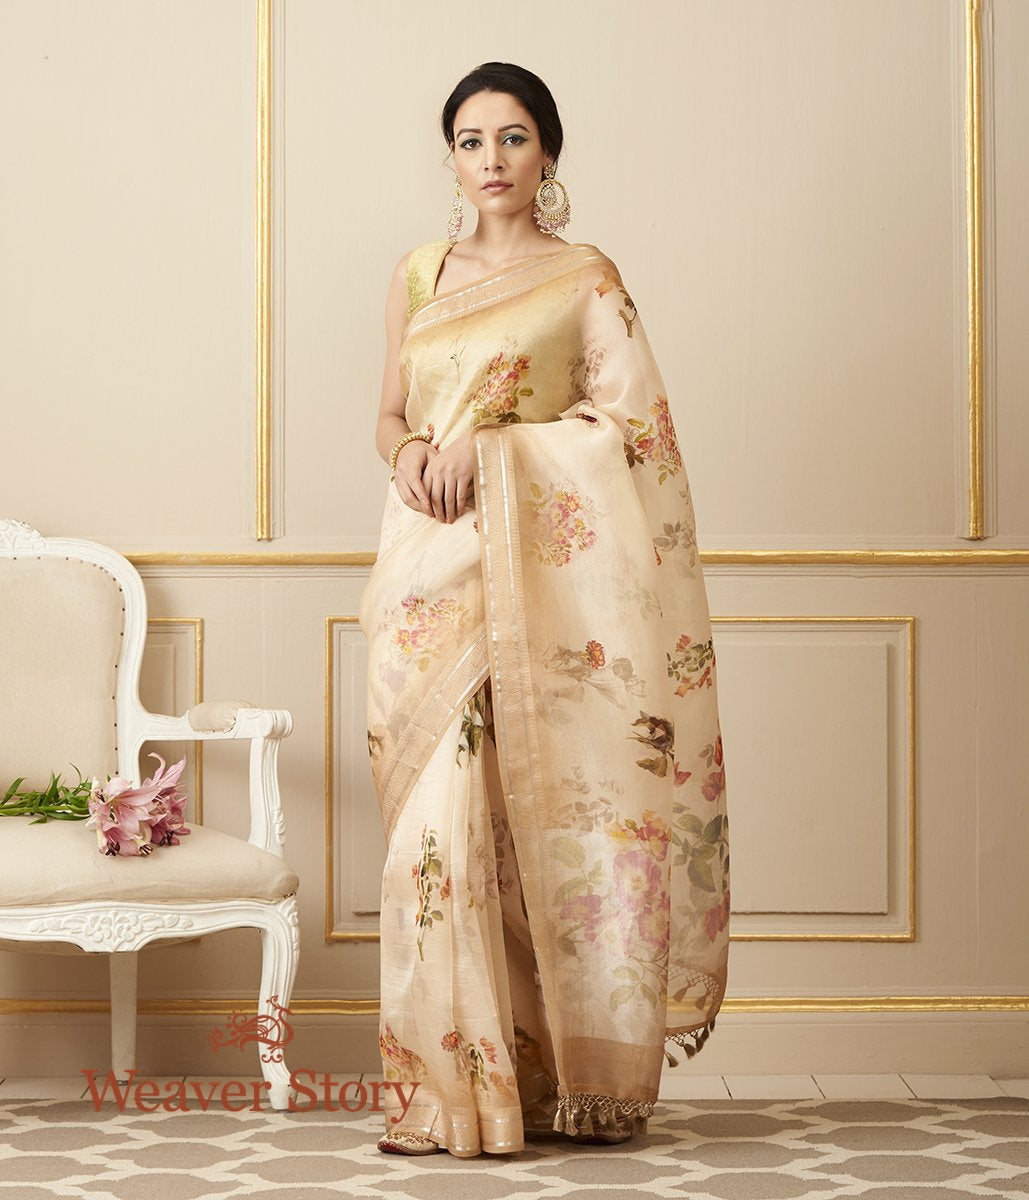 Handwoven Beige Organza Silk Saree with Digital Print